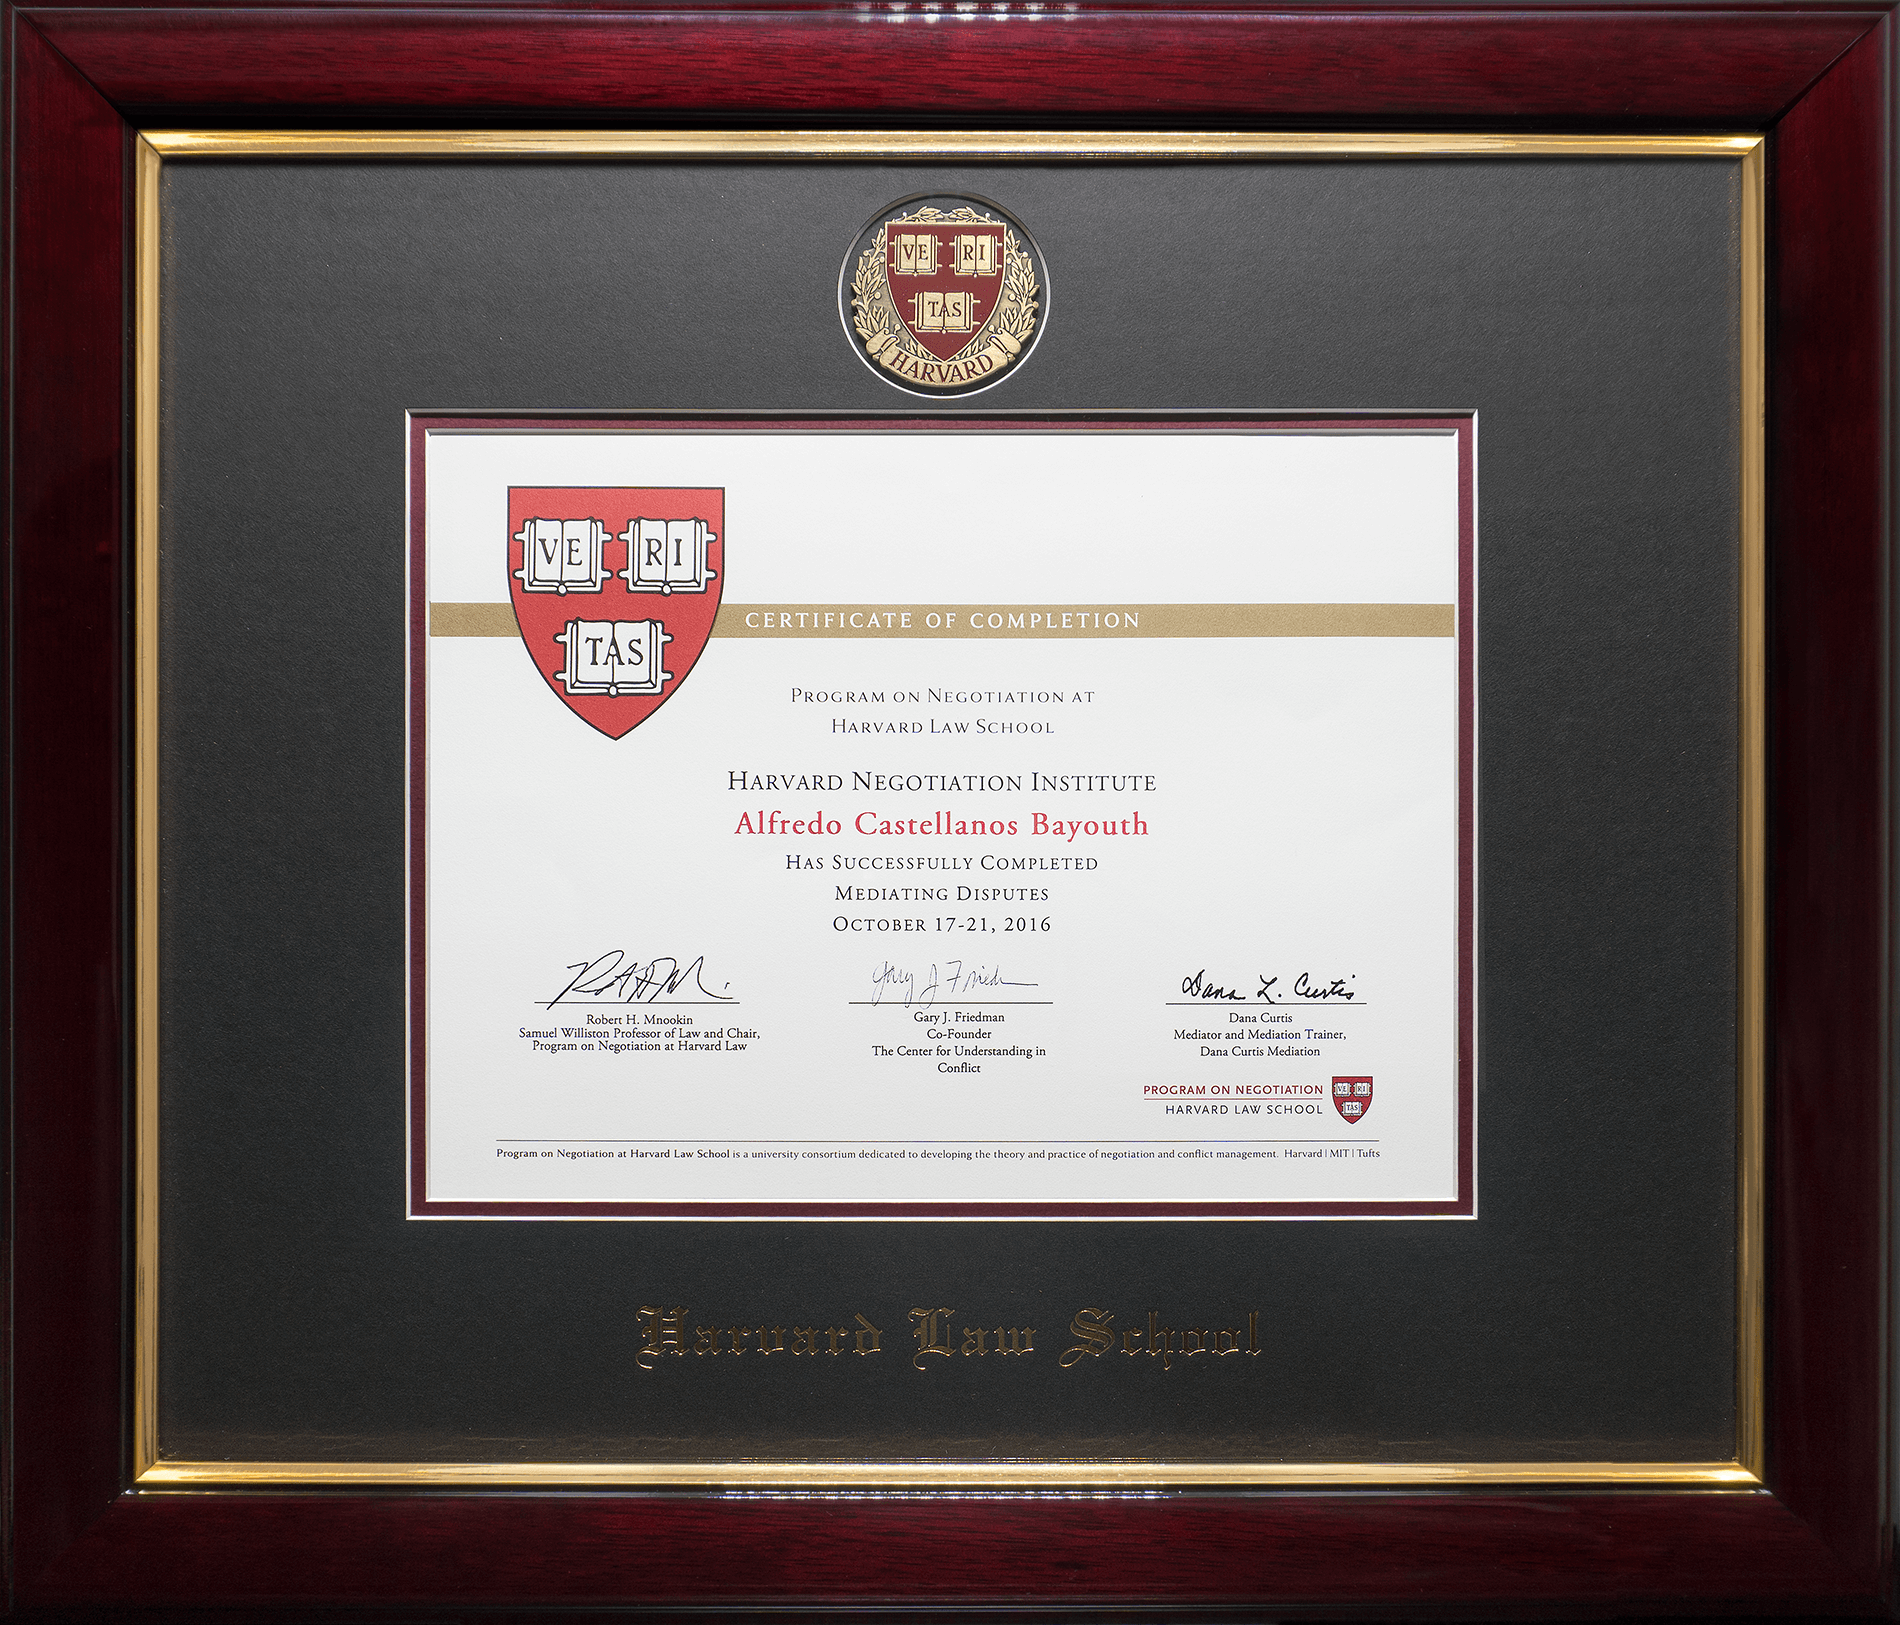 About our practice castellanos gierbolini law firm in puerto rico certificate of completion harvard law schoolmittufts premiere executive mediation program 1betcityfo Choice Image